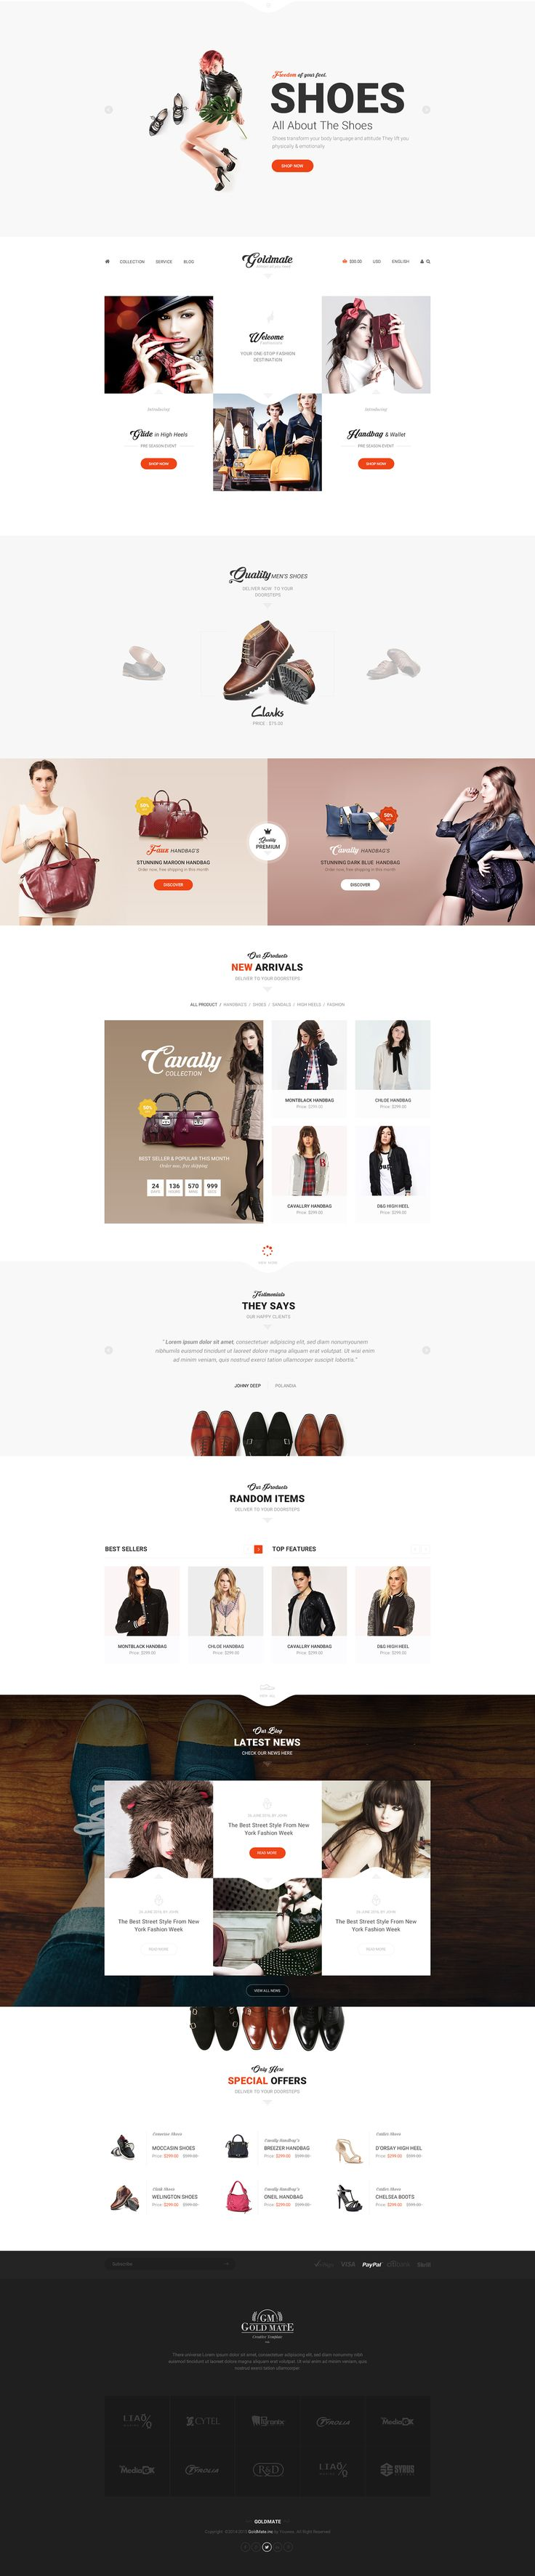 GoldMate e-commerce psd template on Behance